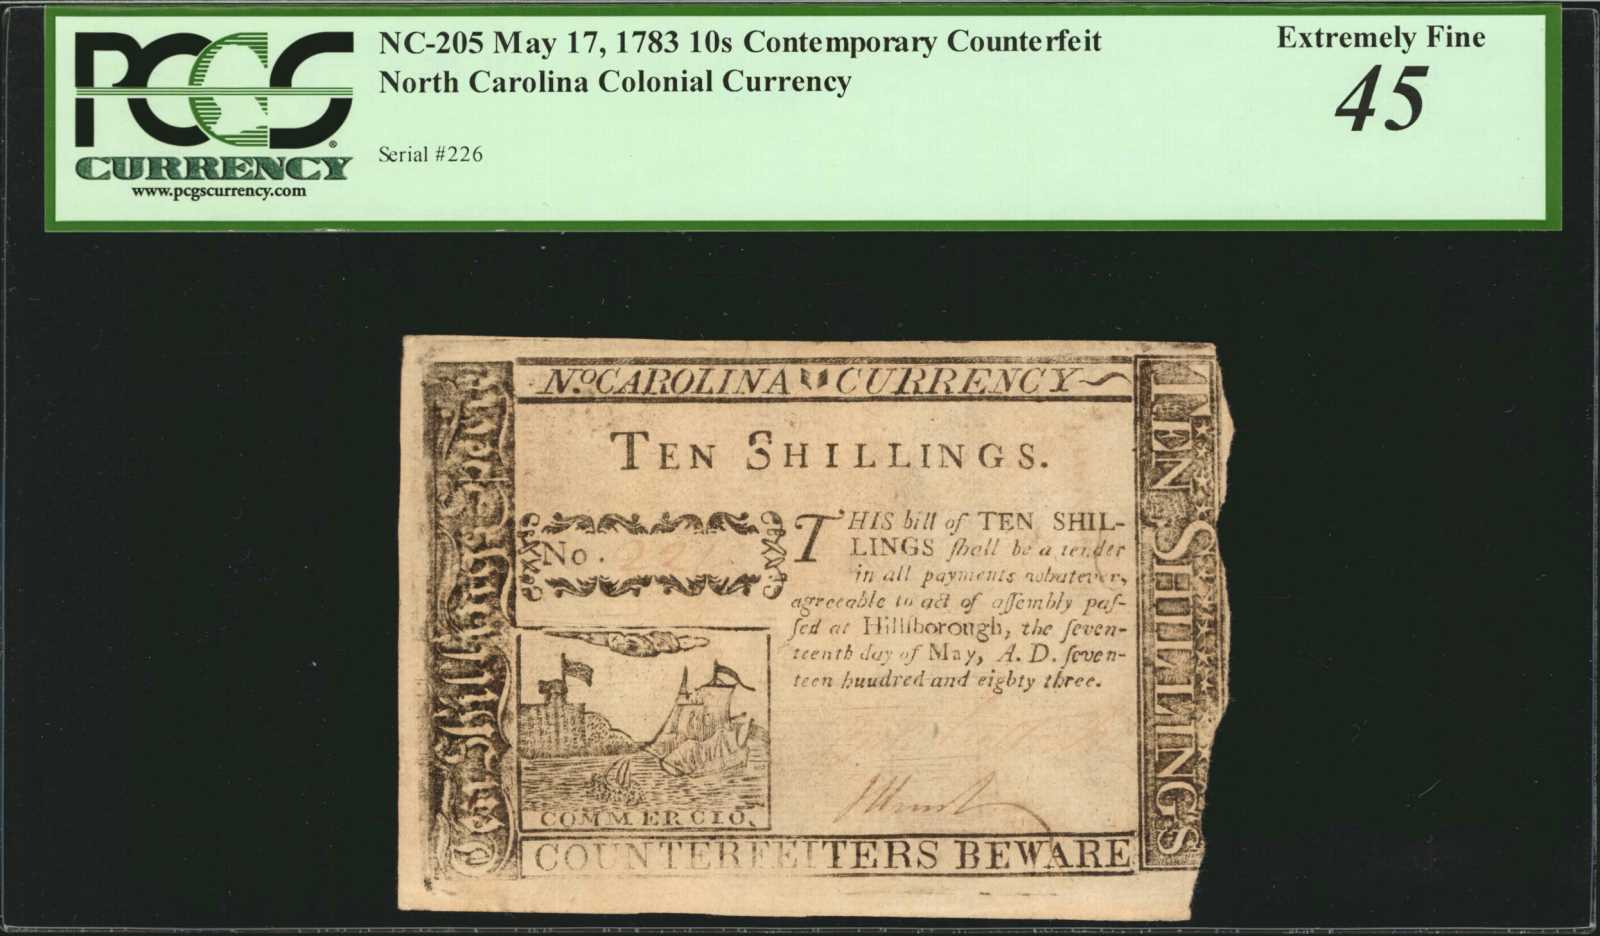 sample image for 1783 17-May 10s (Fr.# NC205)